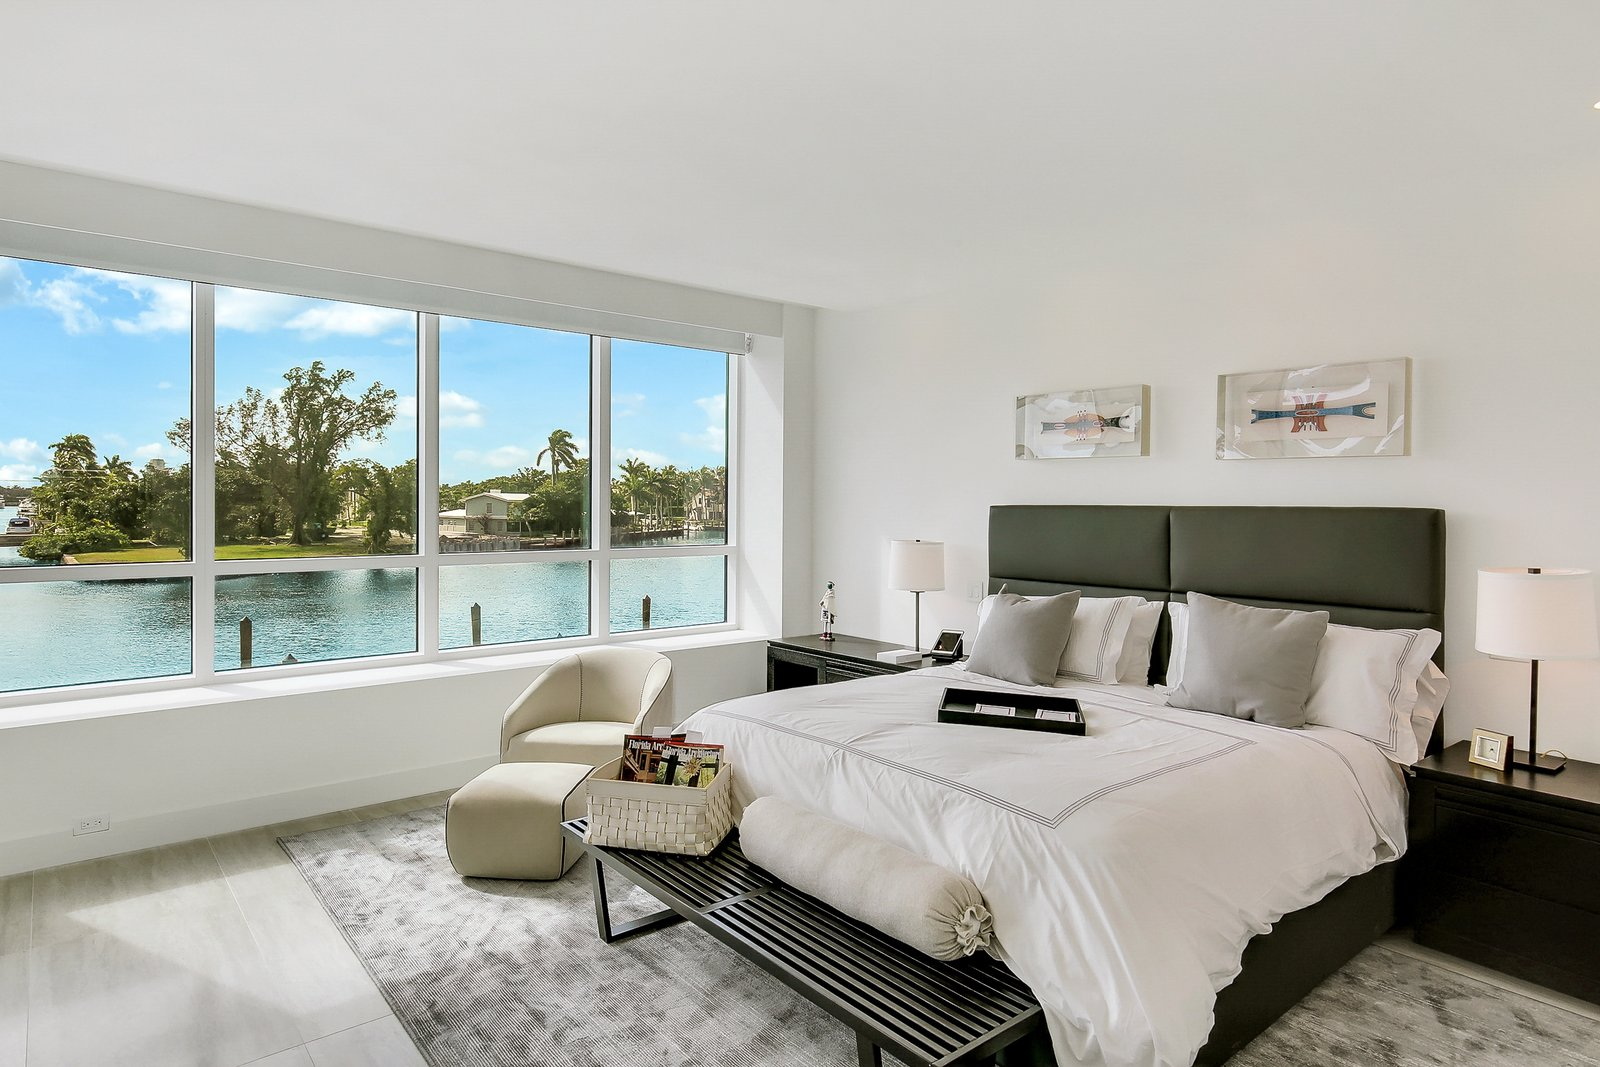 Bedroom  Striking, Modern Waterfront Residences Debut Along Fort Lauderdale's Picturesque Sunset Lake